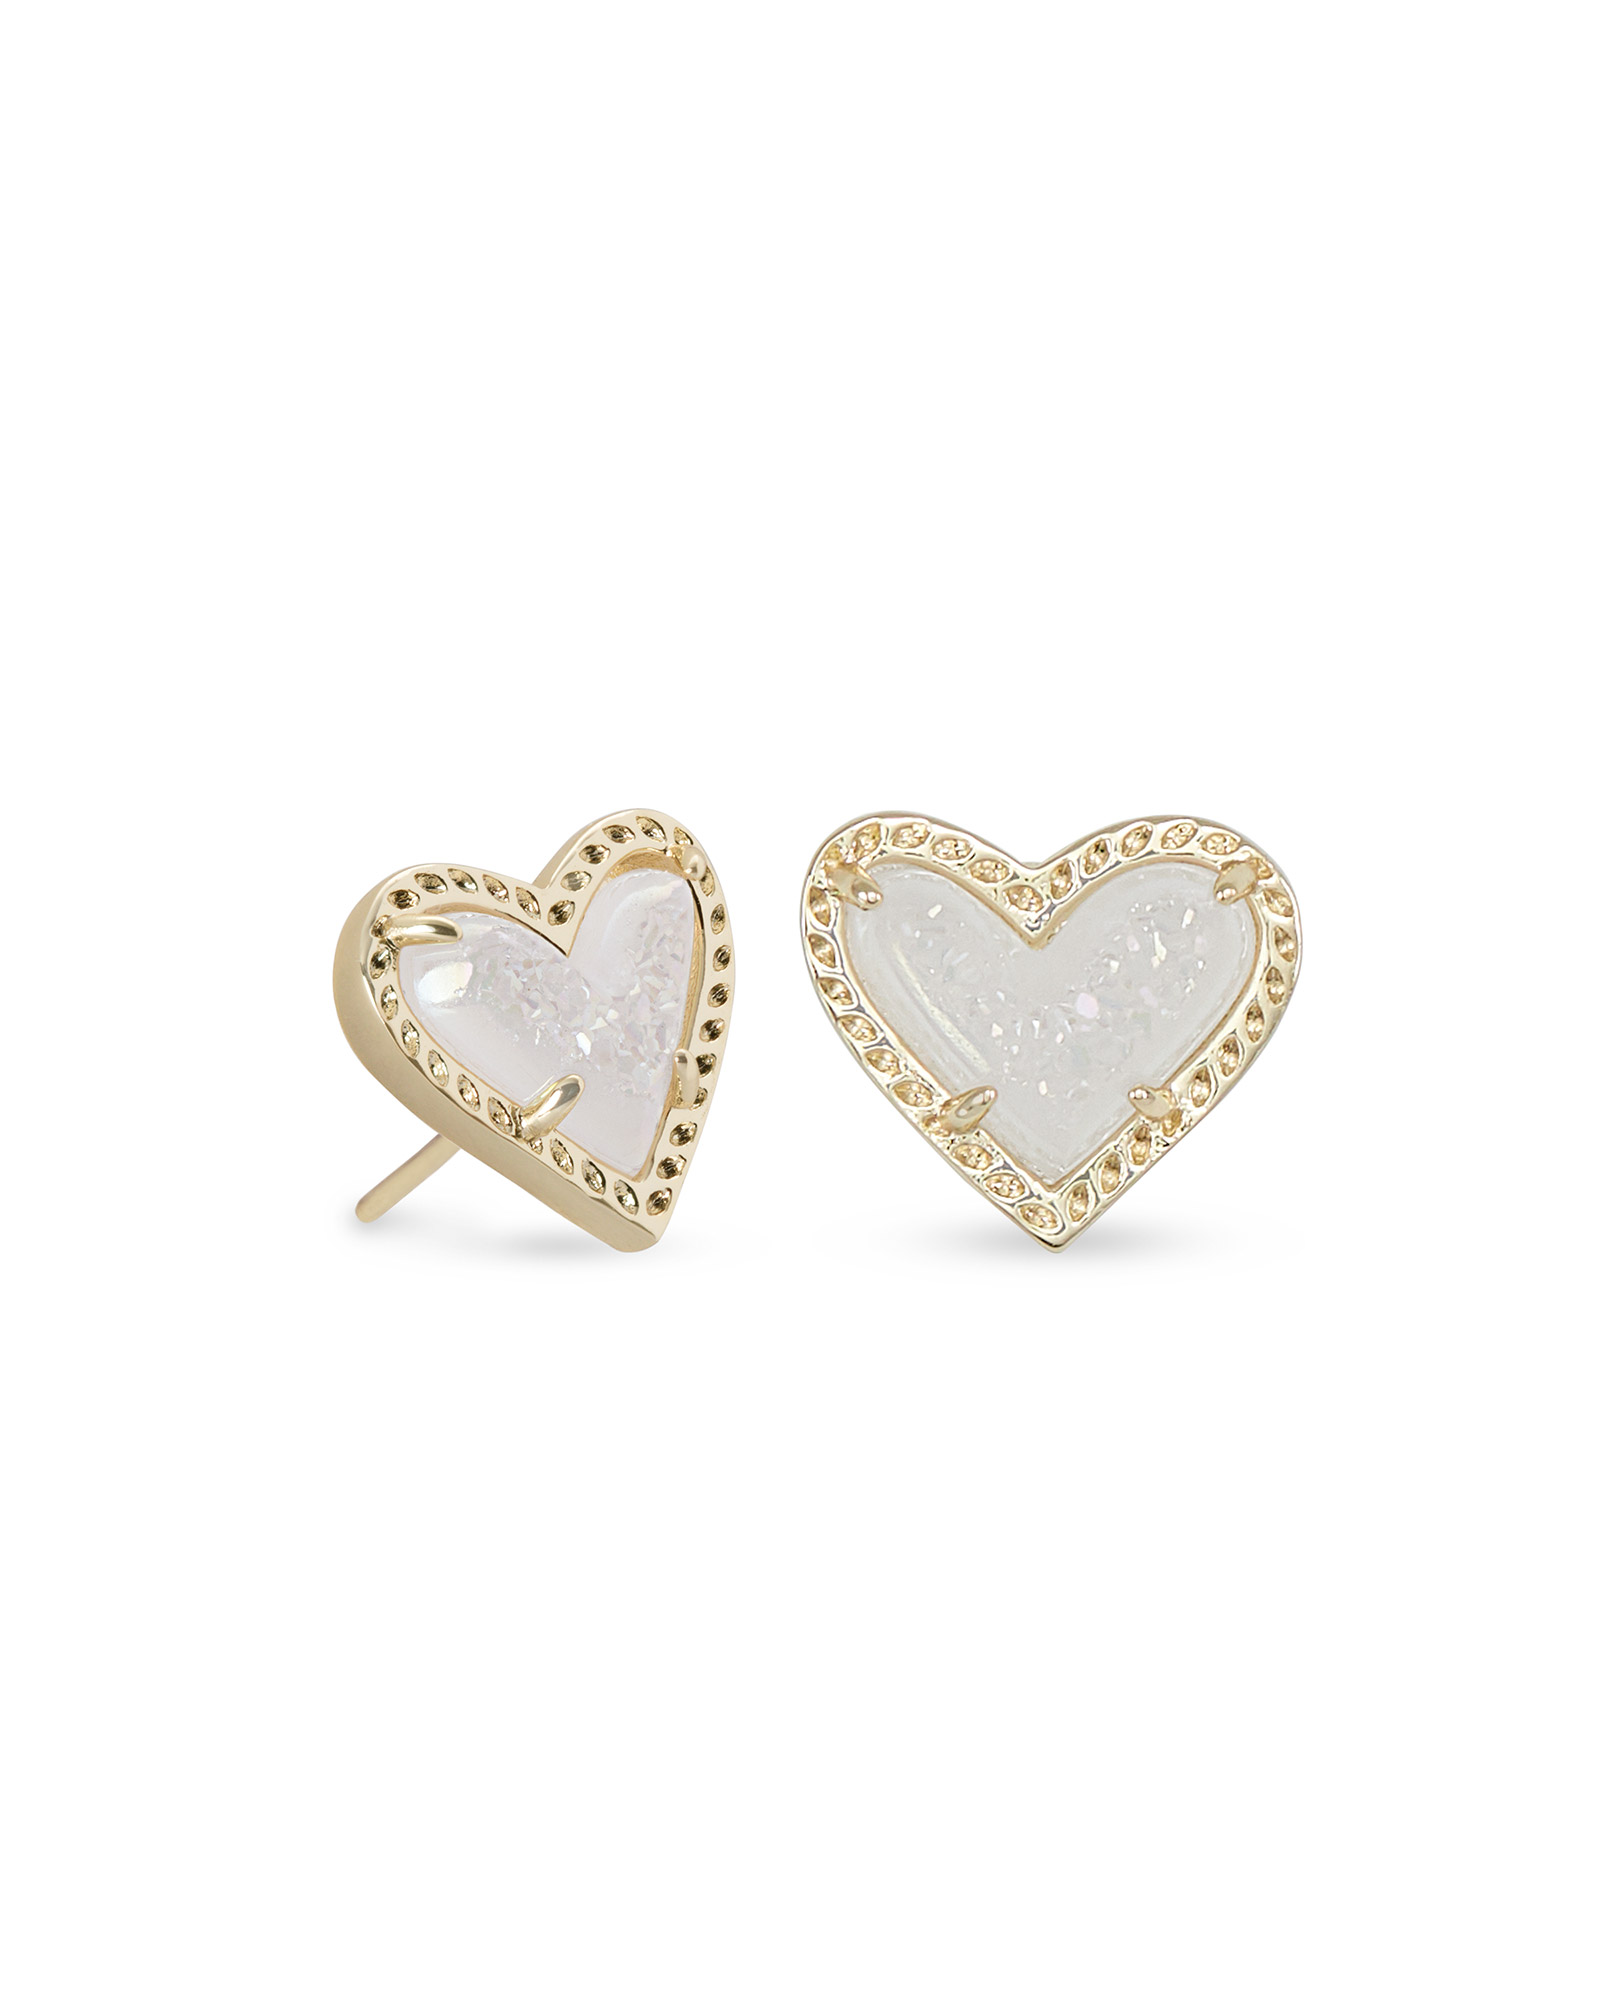 Ari Heart Gold Stud Earrings in Iridescent Drusy